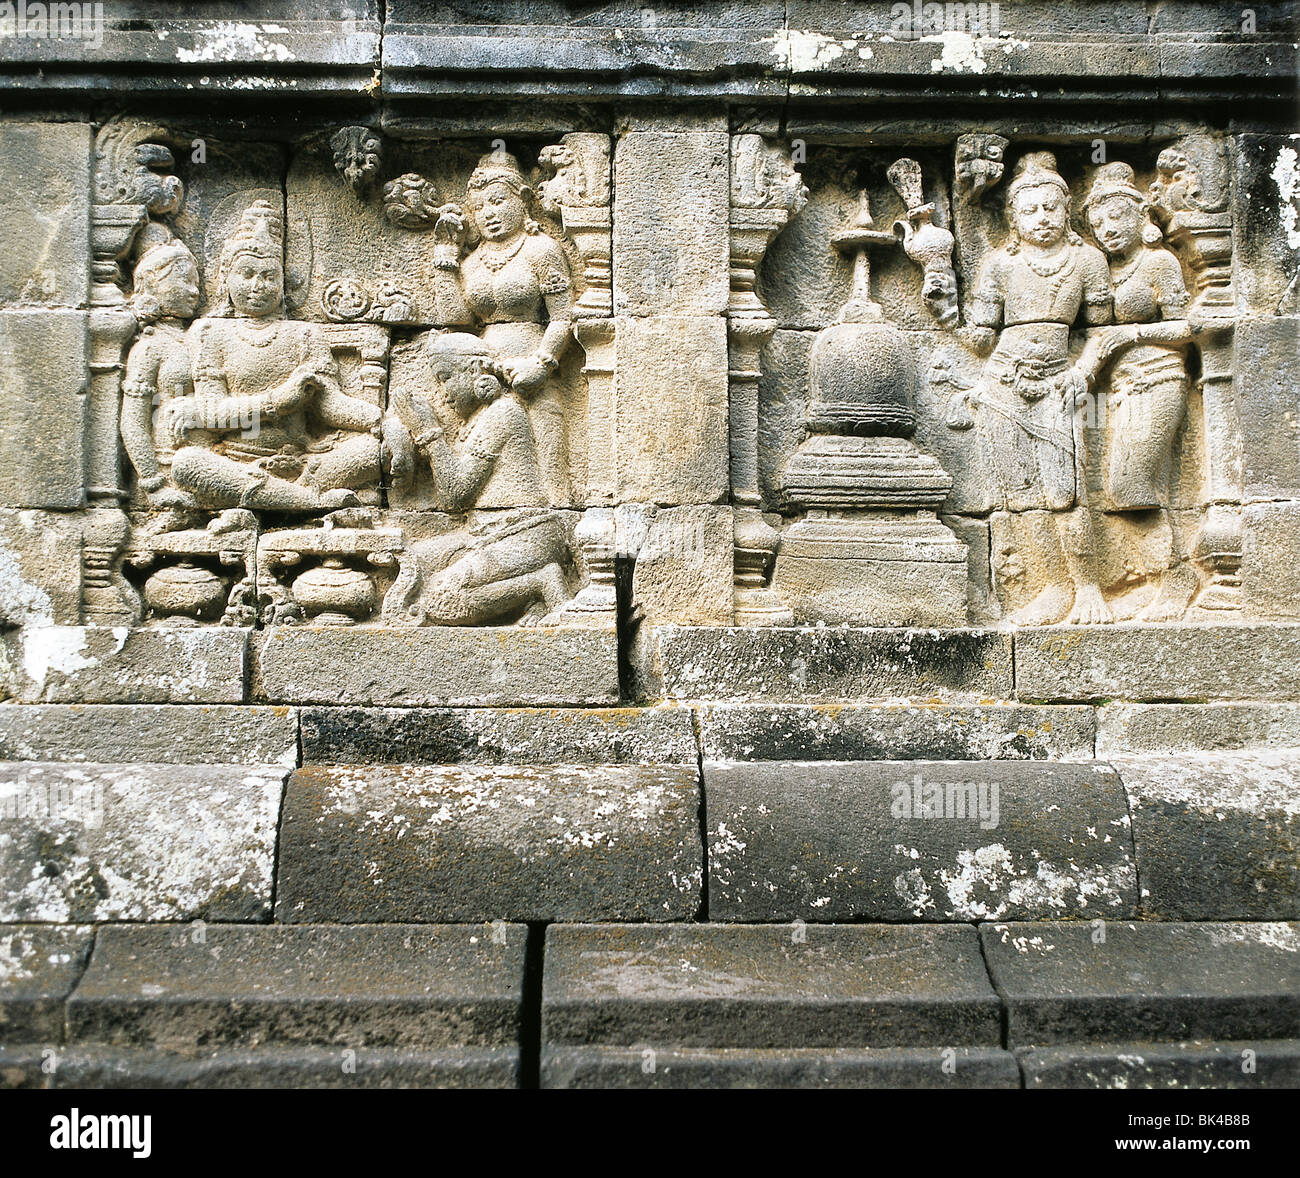 9th Century Stone relief carvings tell stories of Buddha's life at the Buddhist temple Borobudur in Central - Stock Image